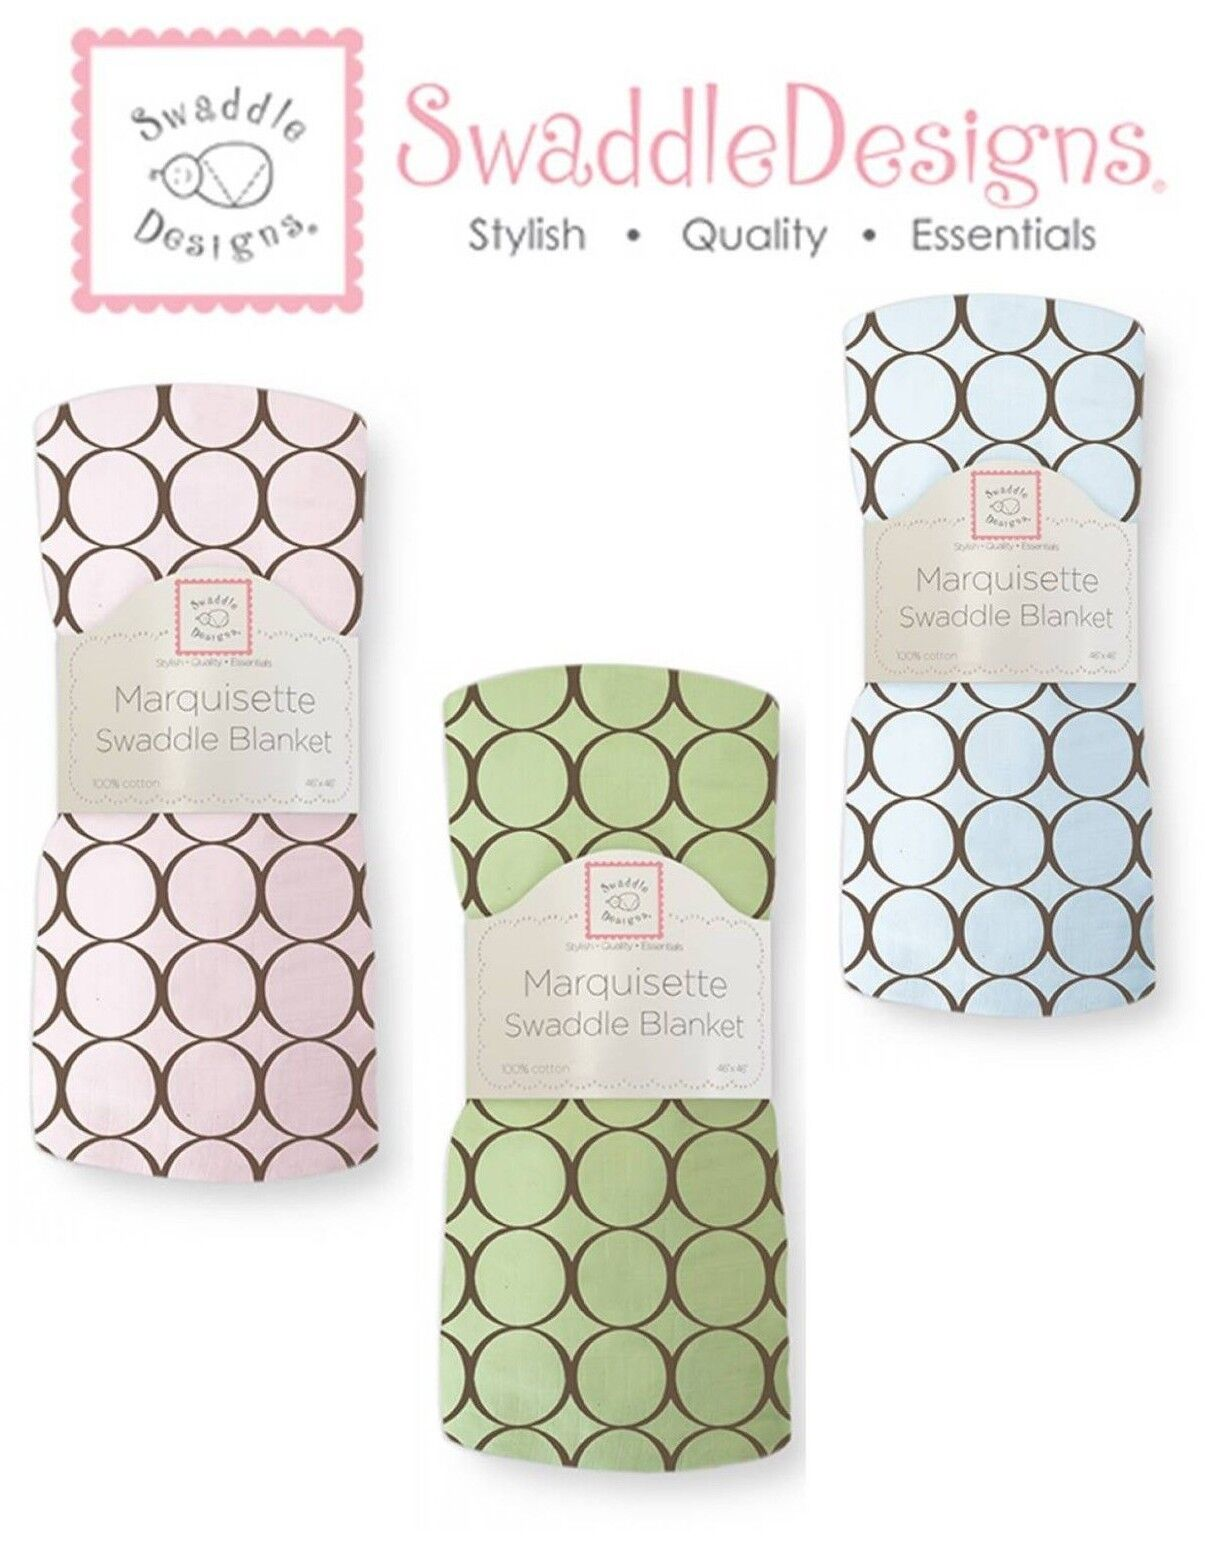 SwaddleDesigns BROWN MOD CIRCLES Marquisette Swaddle Blanket